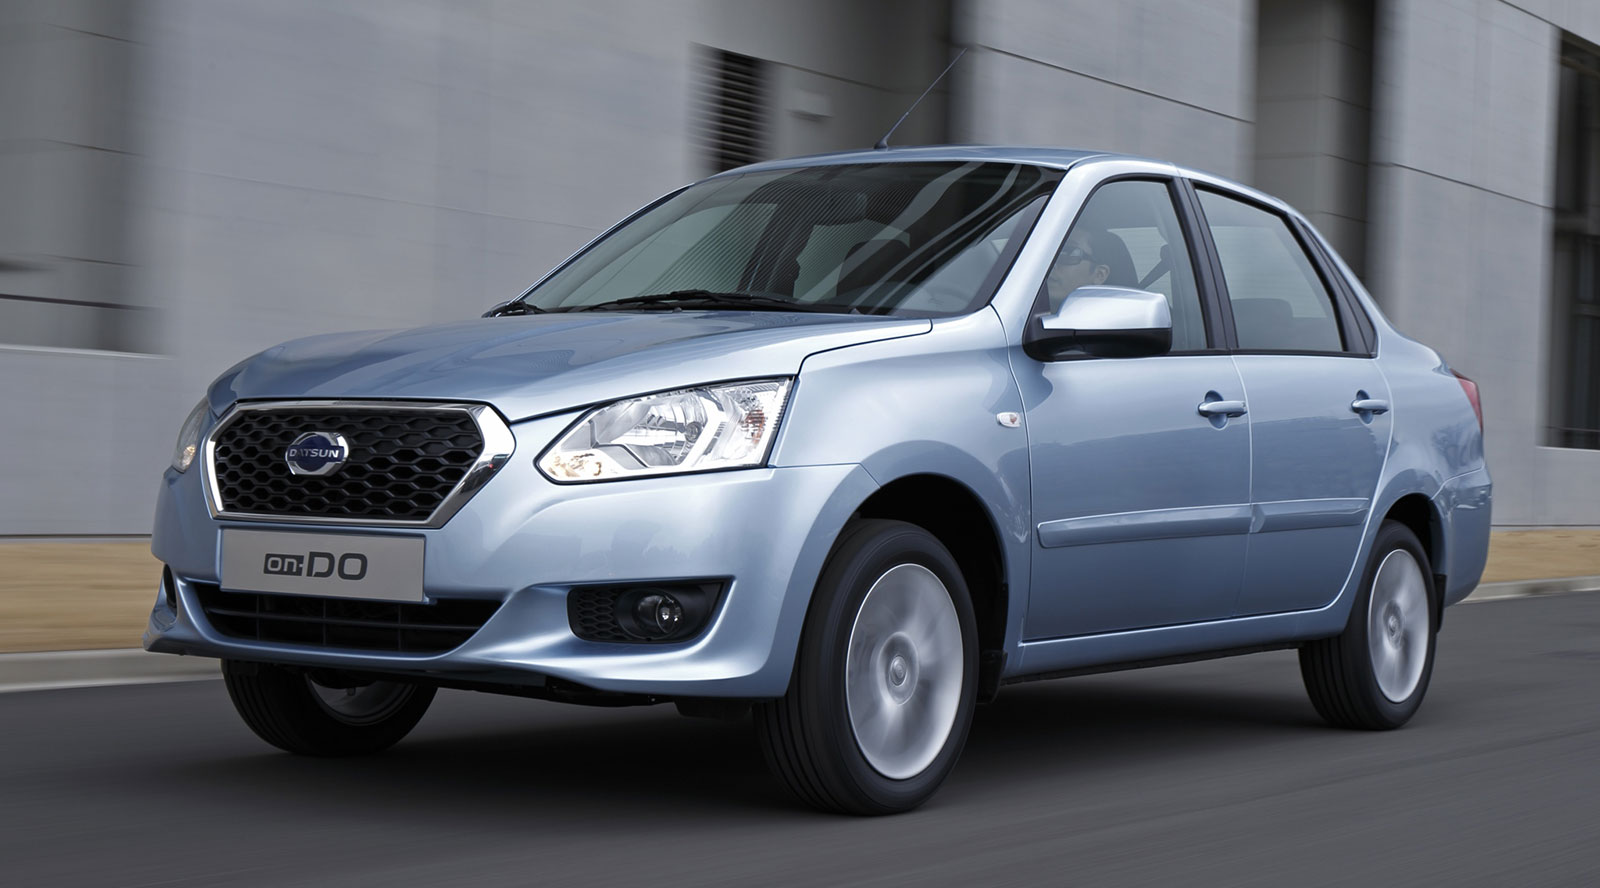 Moving Company Reviews >> Datsun on-DO sedan - based on Lada, made in Russia